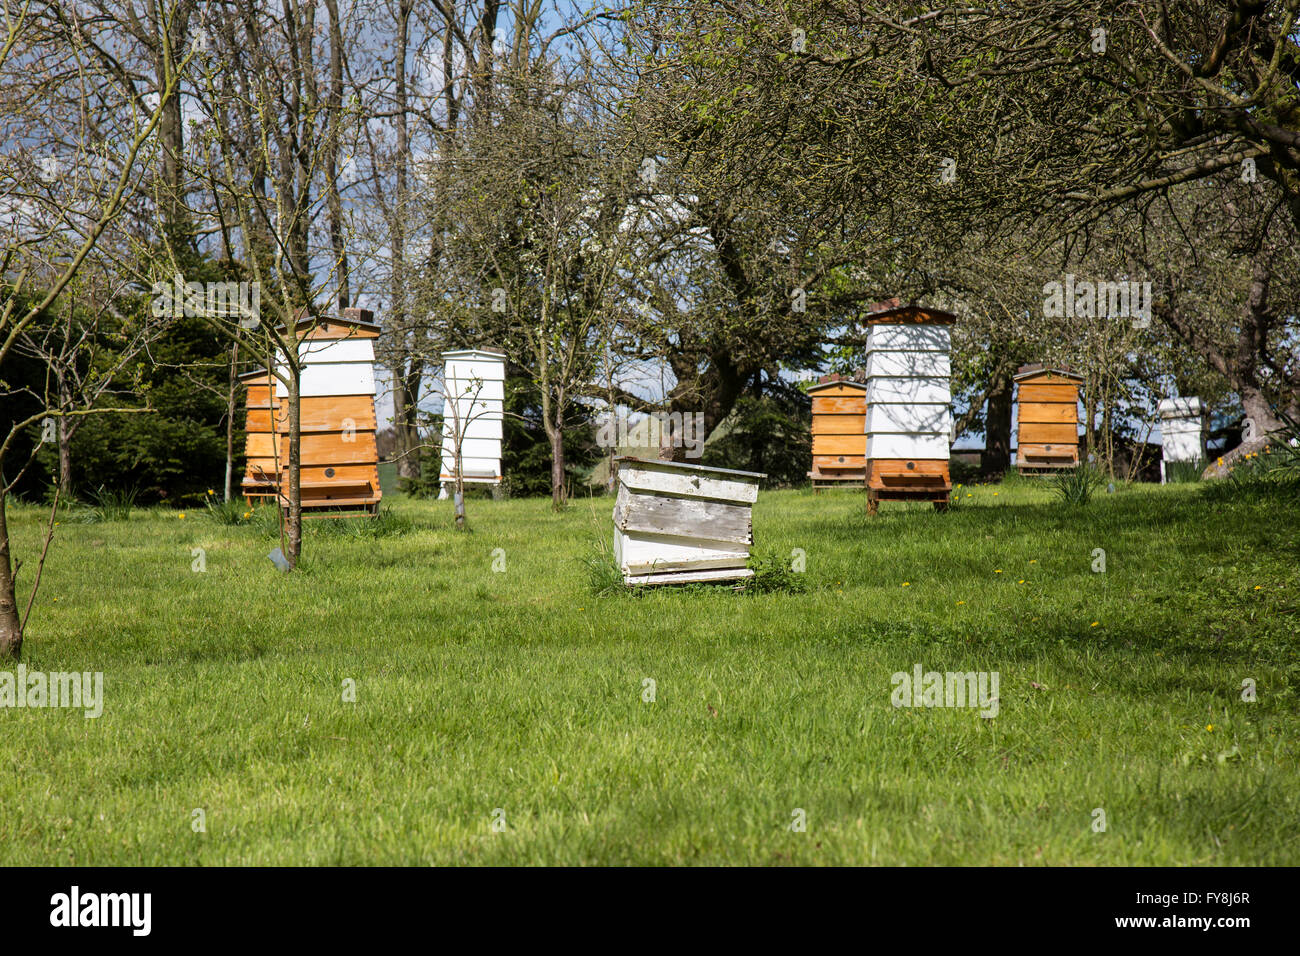 Beehives in an English country garden. - Stock Image